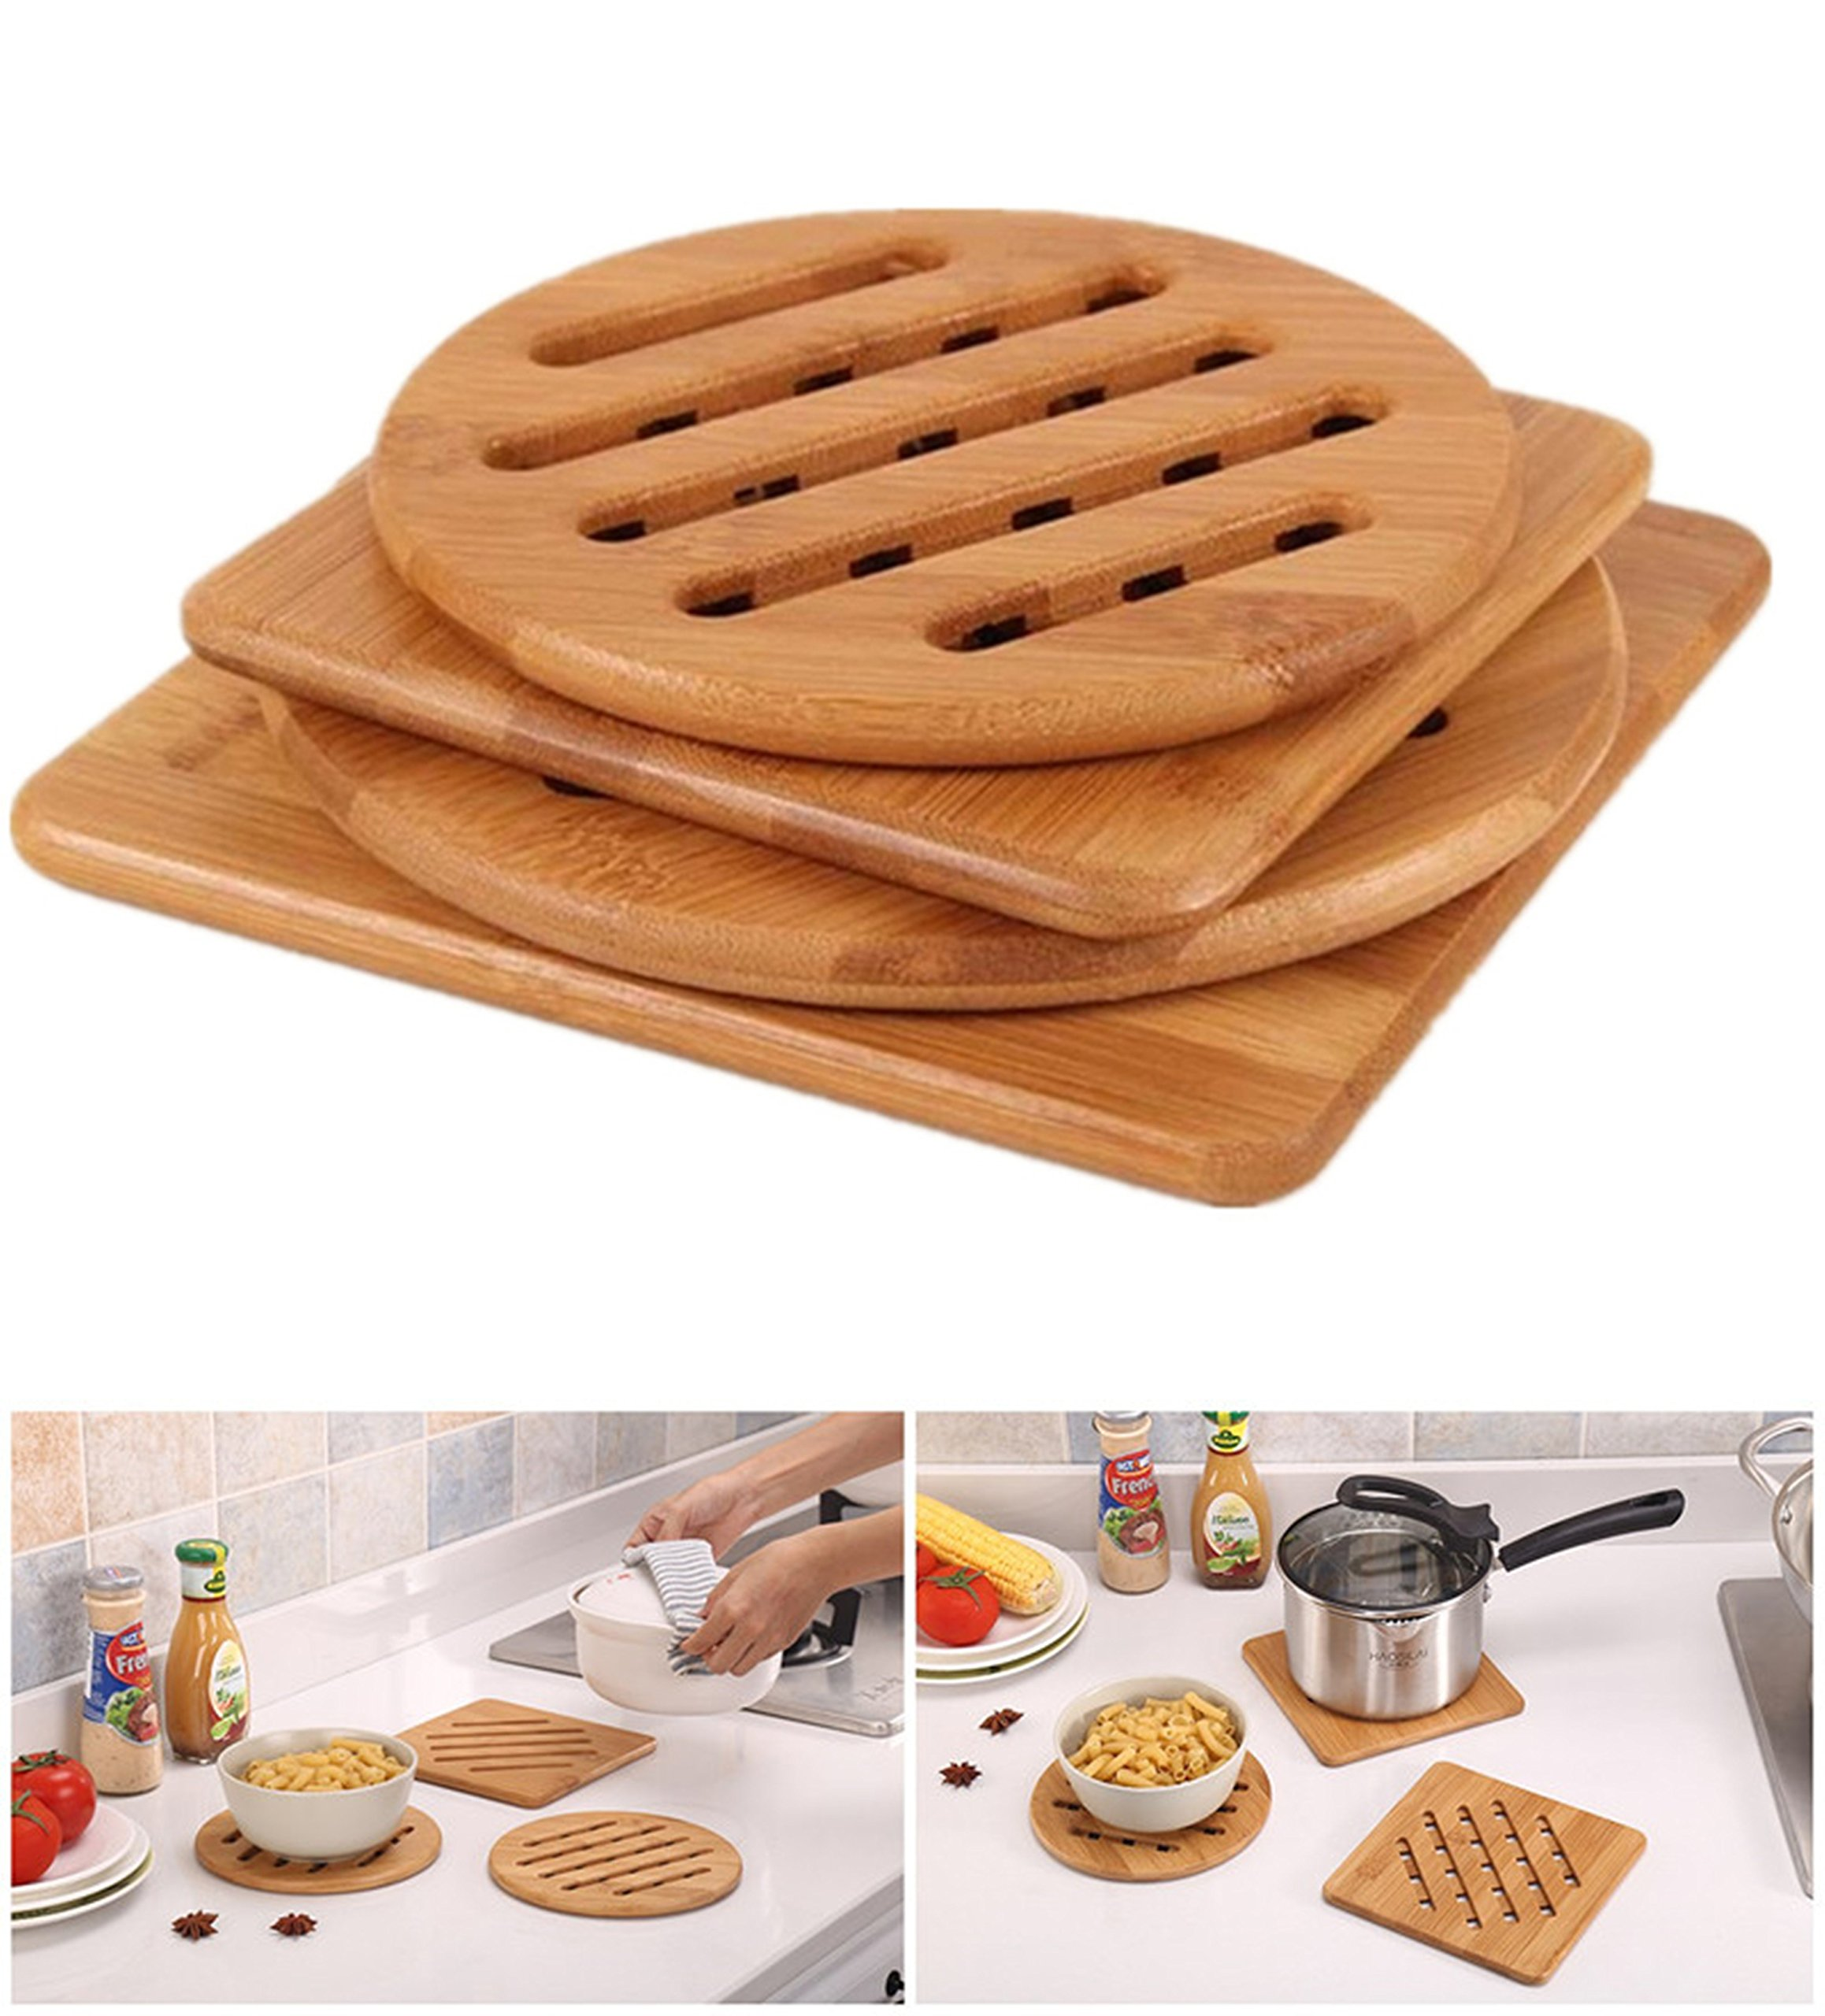 Bamboo Trivet, Weikai Home Kitchen Bamboo Hot Pads Trivet, Heat Resistant Pads Teapot Trivet, Square and Round (Multi-size, Pack of 4) by Weikai